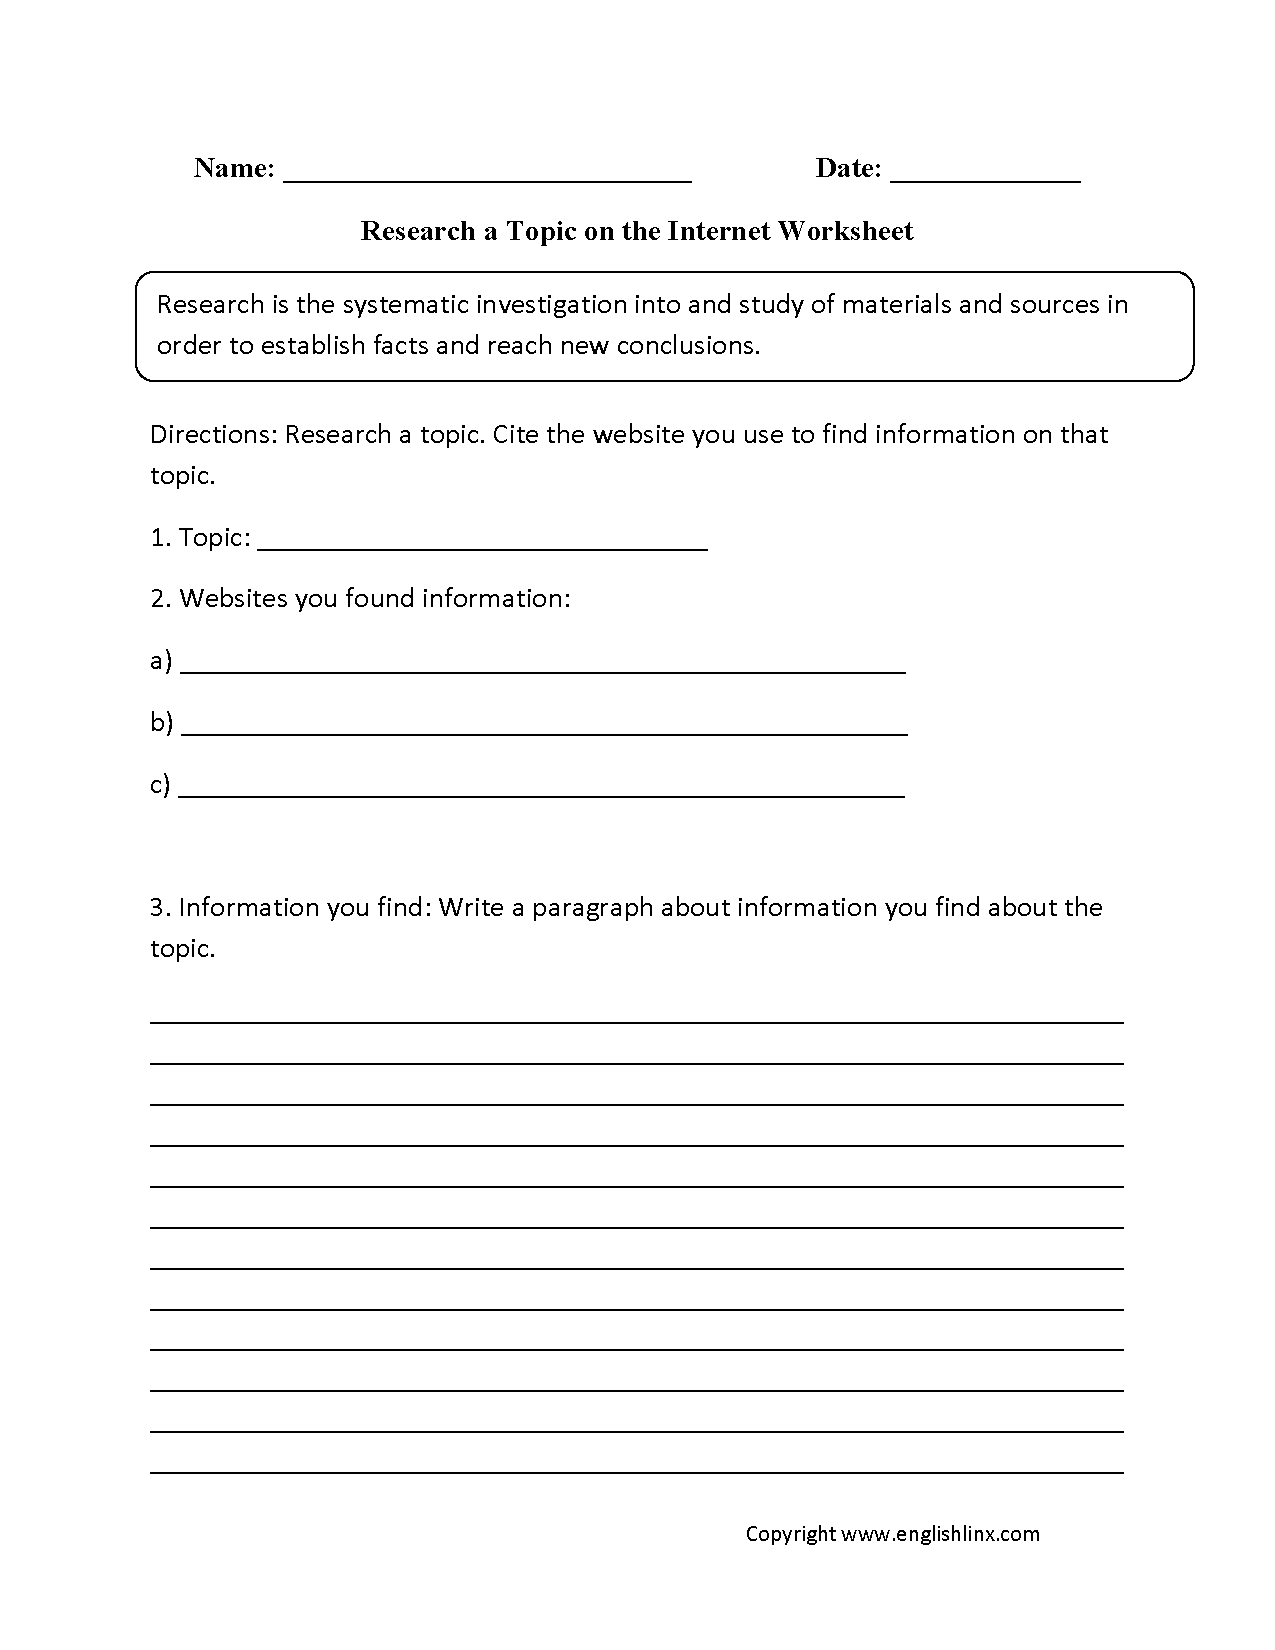 Aldiablosus  Marvelous Englishlinxcom  Research Worksheets With Fascinating On The Internet Worksheet With Amazing Science And Scientific Method Worksheet Answers Also Pronoun Practice Worksheets In Addition Think And Grow Rich Worksheet And The Language Of Anatomy Worksheet Answers As Well As Fun Pre K Worksheets Additionally Science Graphing Worksheets From Englishlinxcom With Aldiablosus  Fascinating Englishlinxcom  Research Worksheets With Amazing On The Internet Worksheet And Marvelous Science And Scientific Method Worksheet Answers Also Pronoun Practice Worksheets In Addition Think And Grow Rich Worksheet From Englishlinxcom